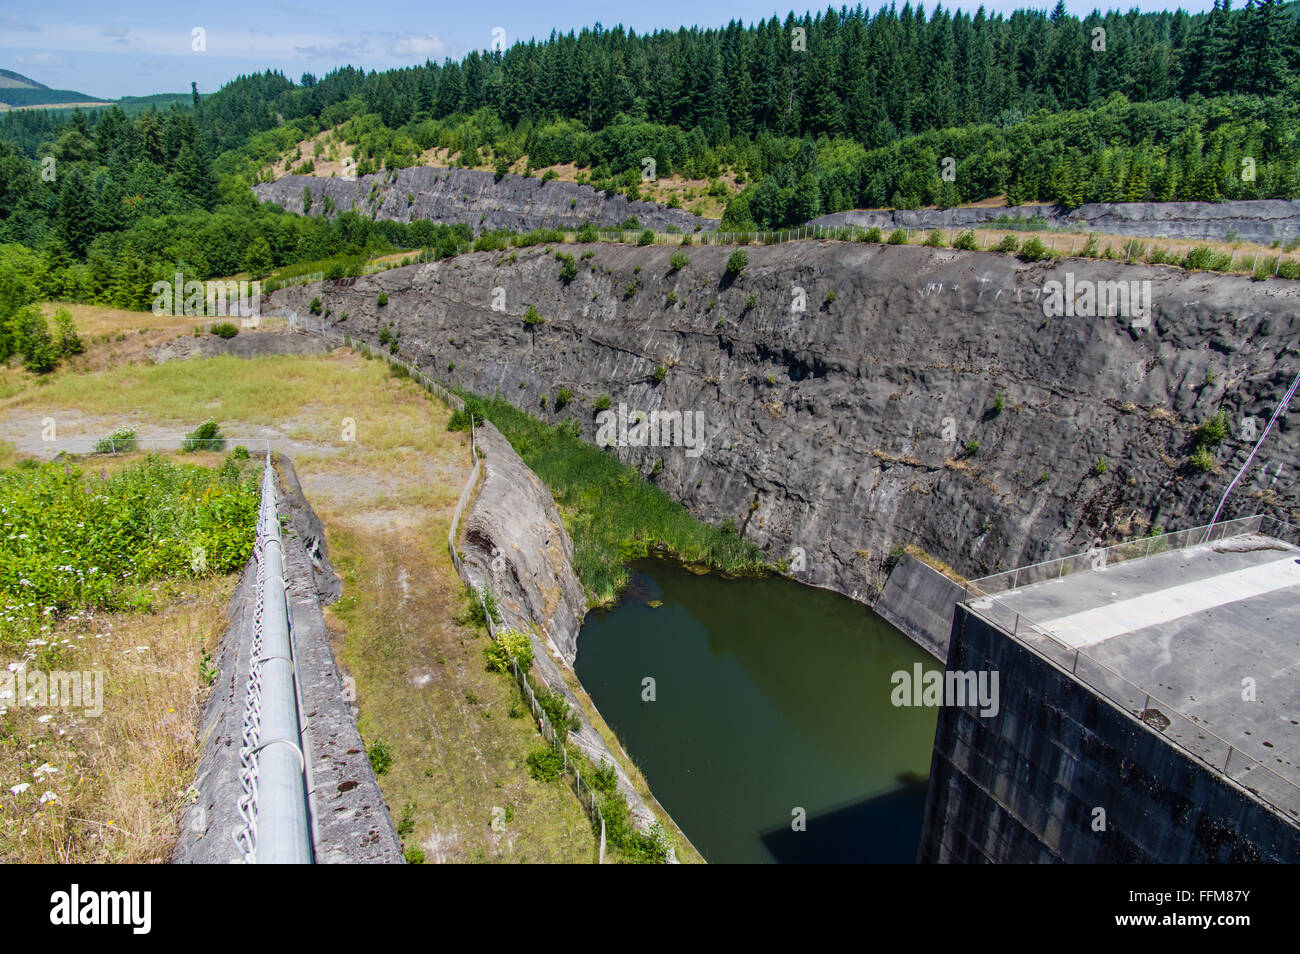 Hardened downstream flow path from the sediment retention dam North Fork Toutle RIver - Stock Image